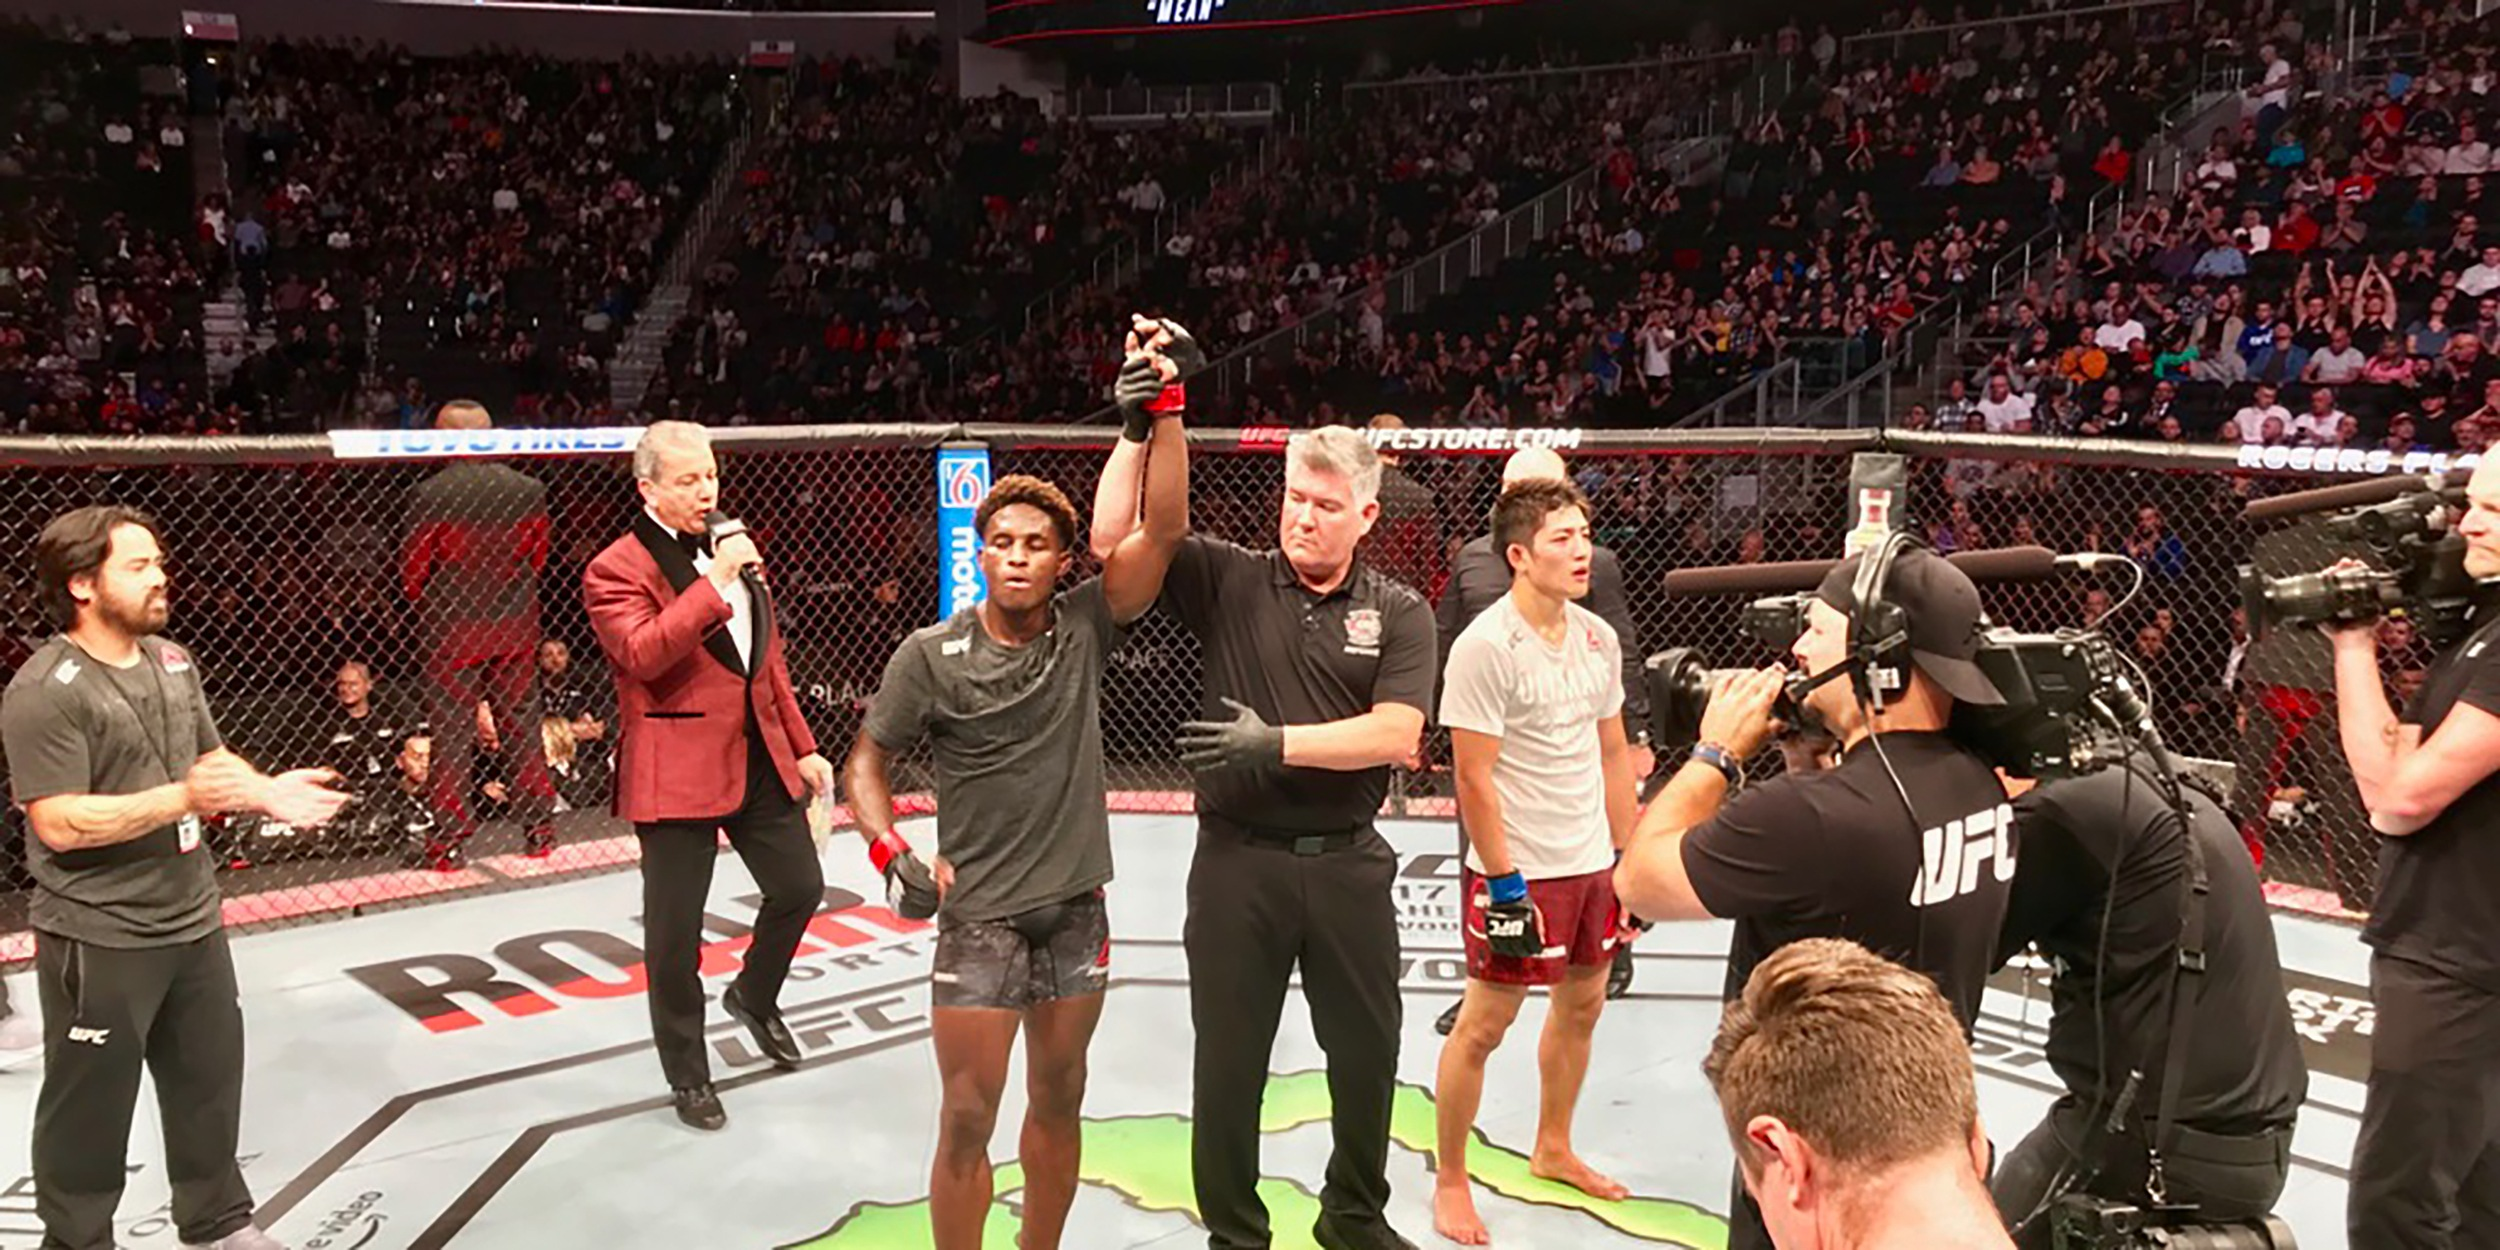 Hakeem continues his streak with his 3rd consecutive UFC Win!